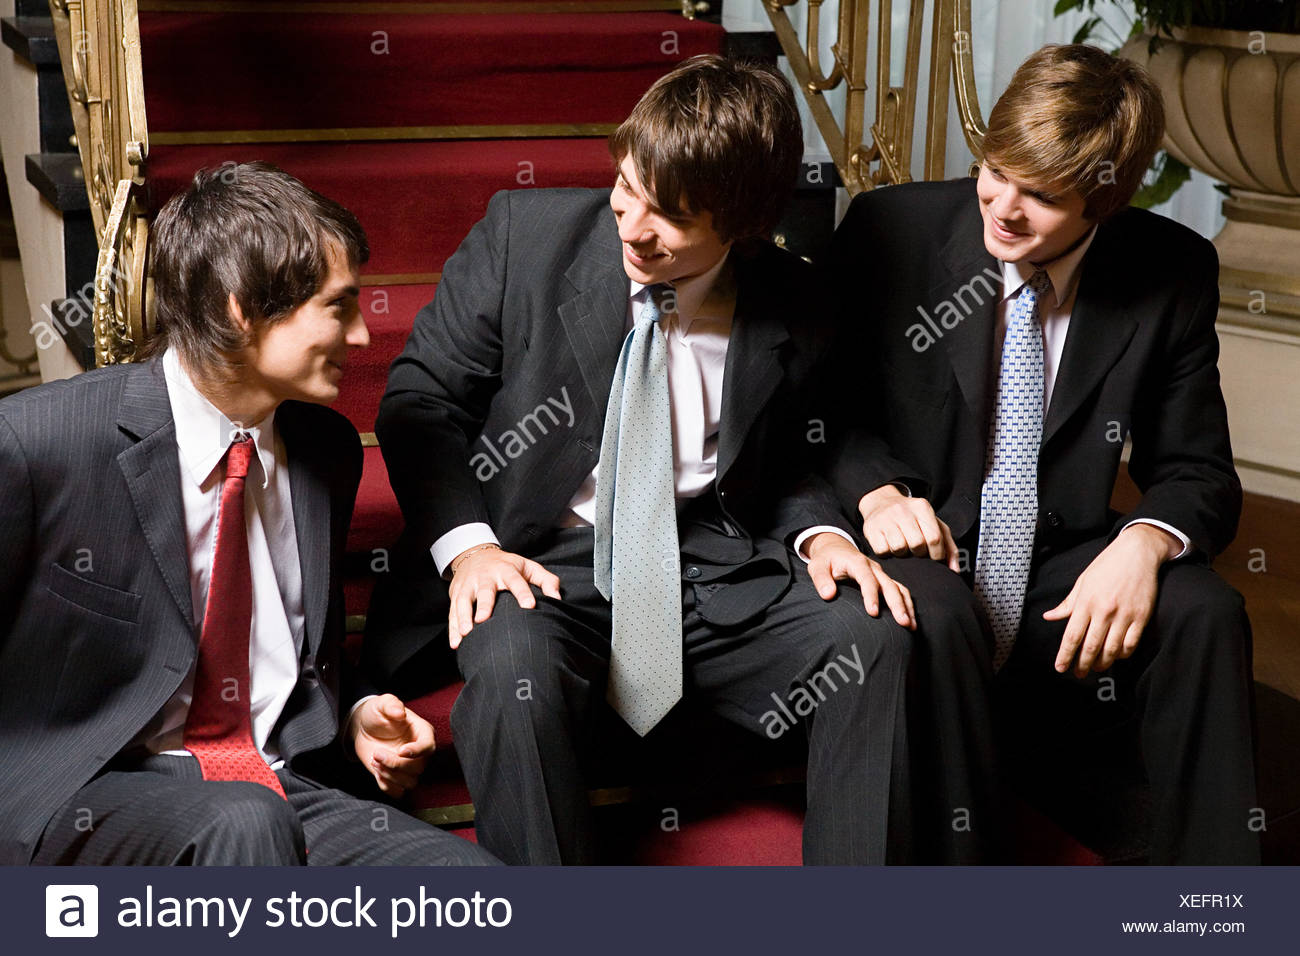 Teenage boys wearing suits - Stock Image